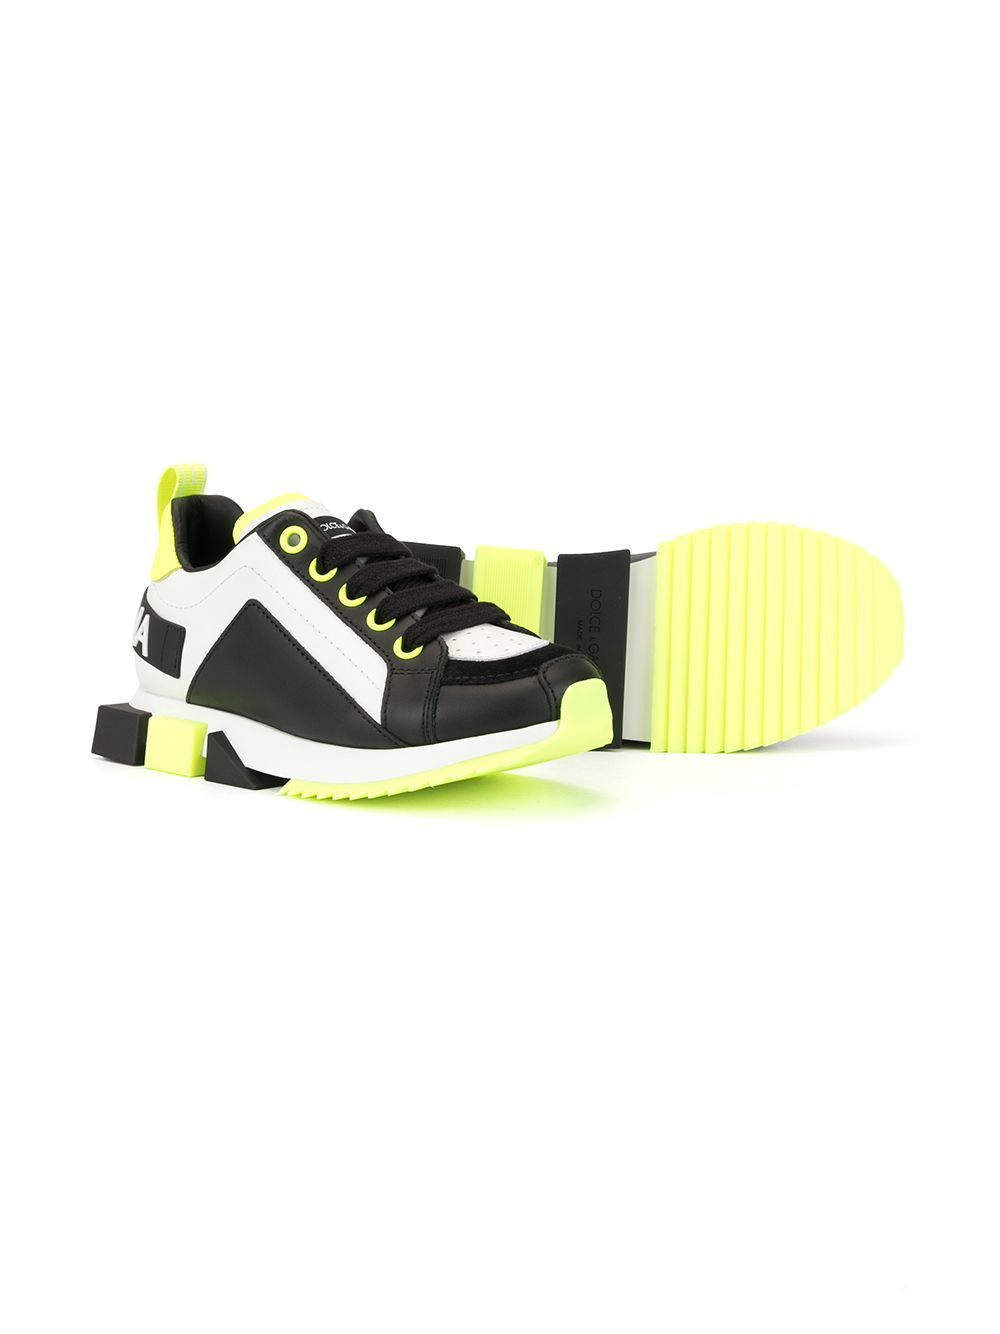 DOLCE & GABBANA KIDS Colour Block Sneakers White/Fluorescent Yellow